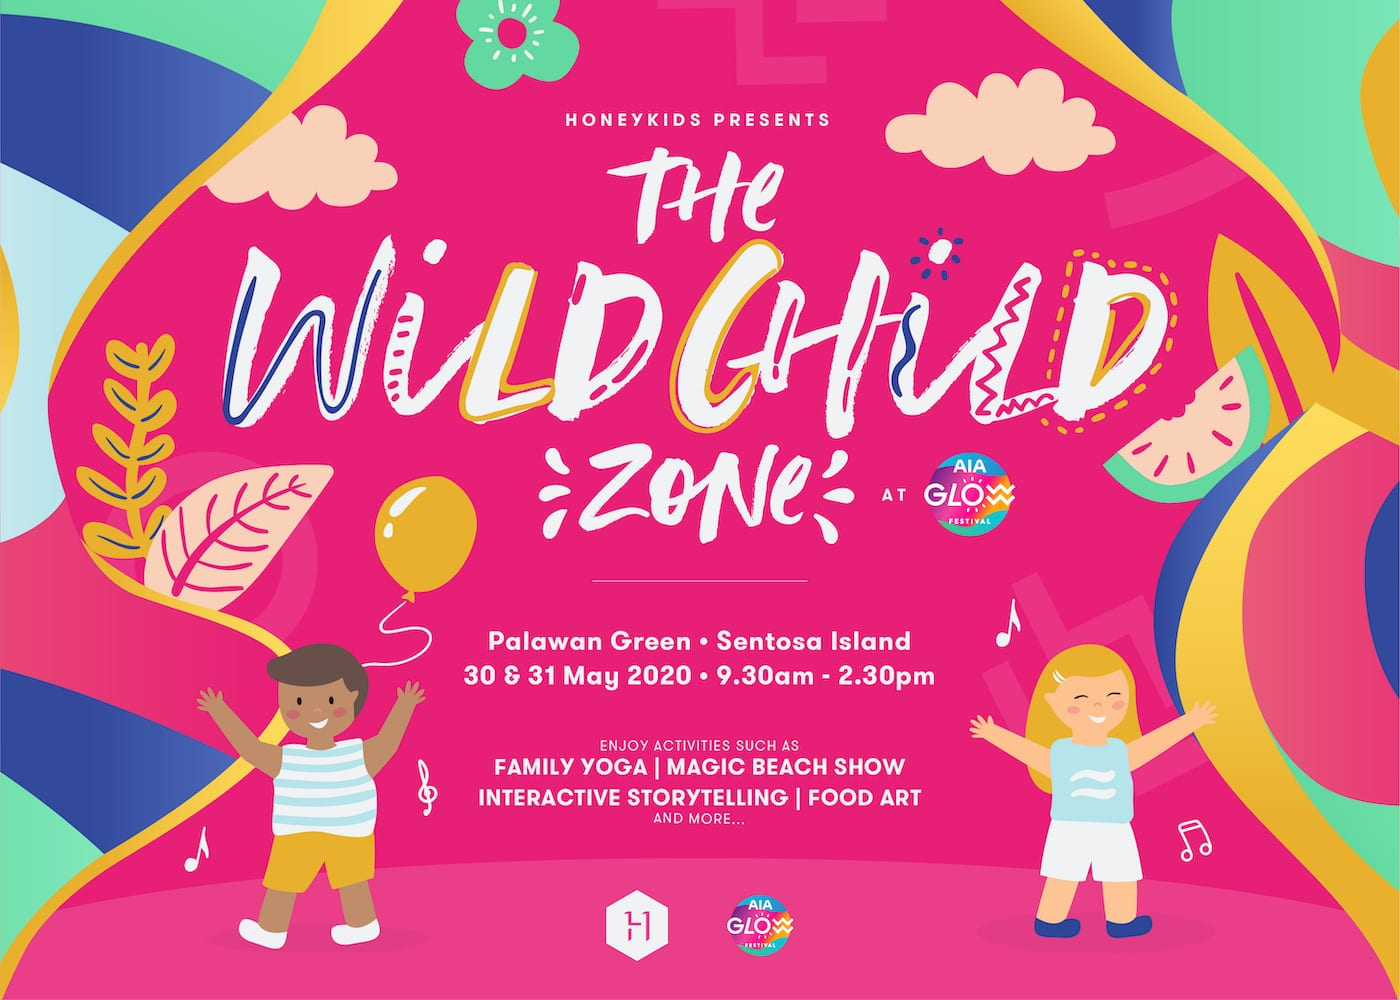 The Wild Child Zone @ AIA Glow